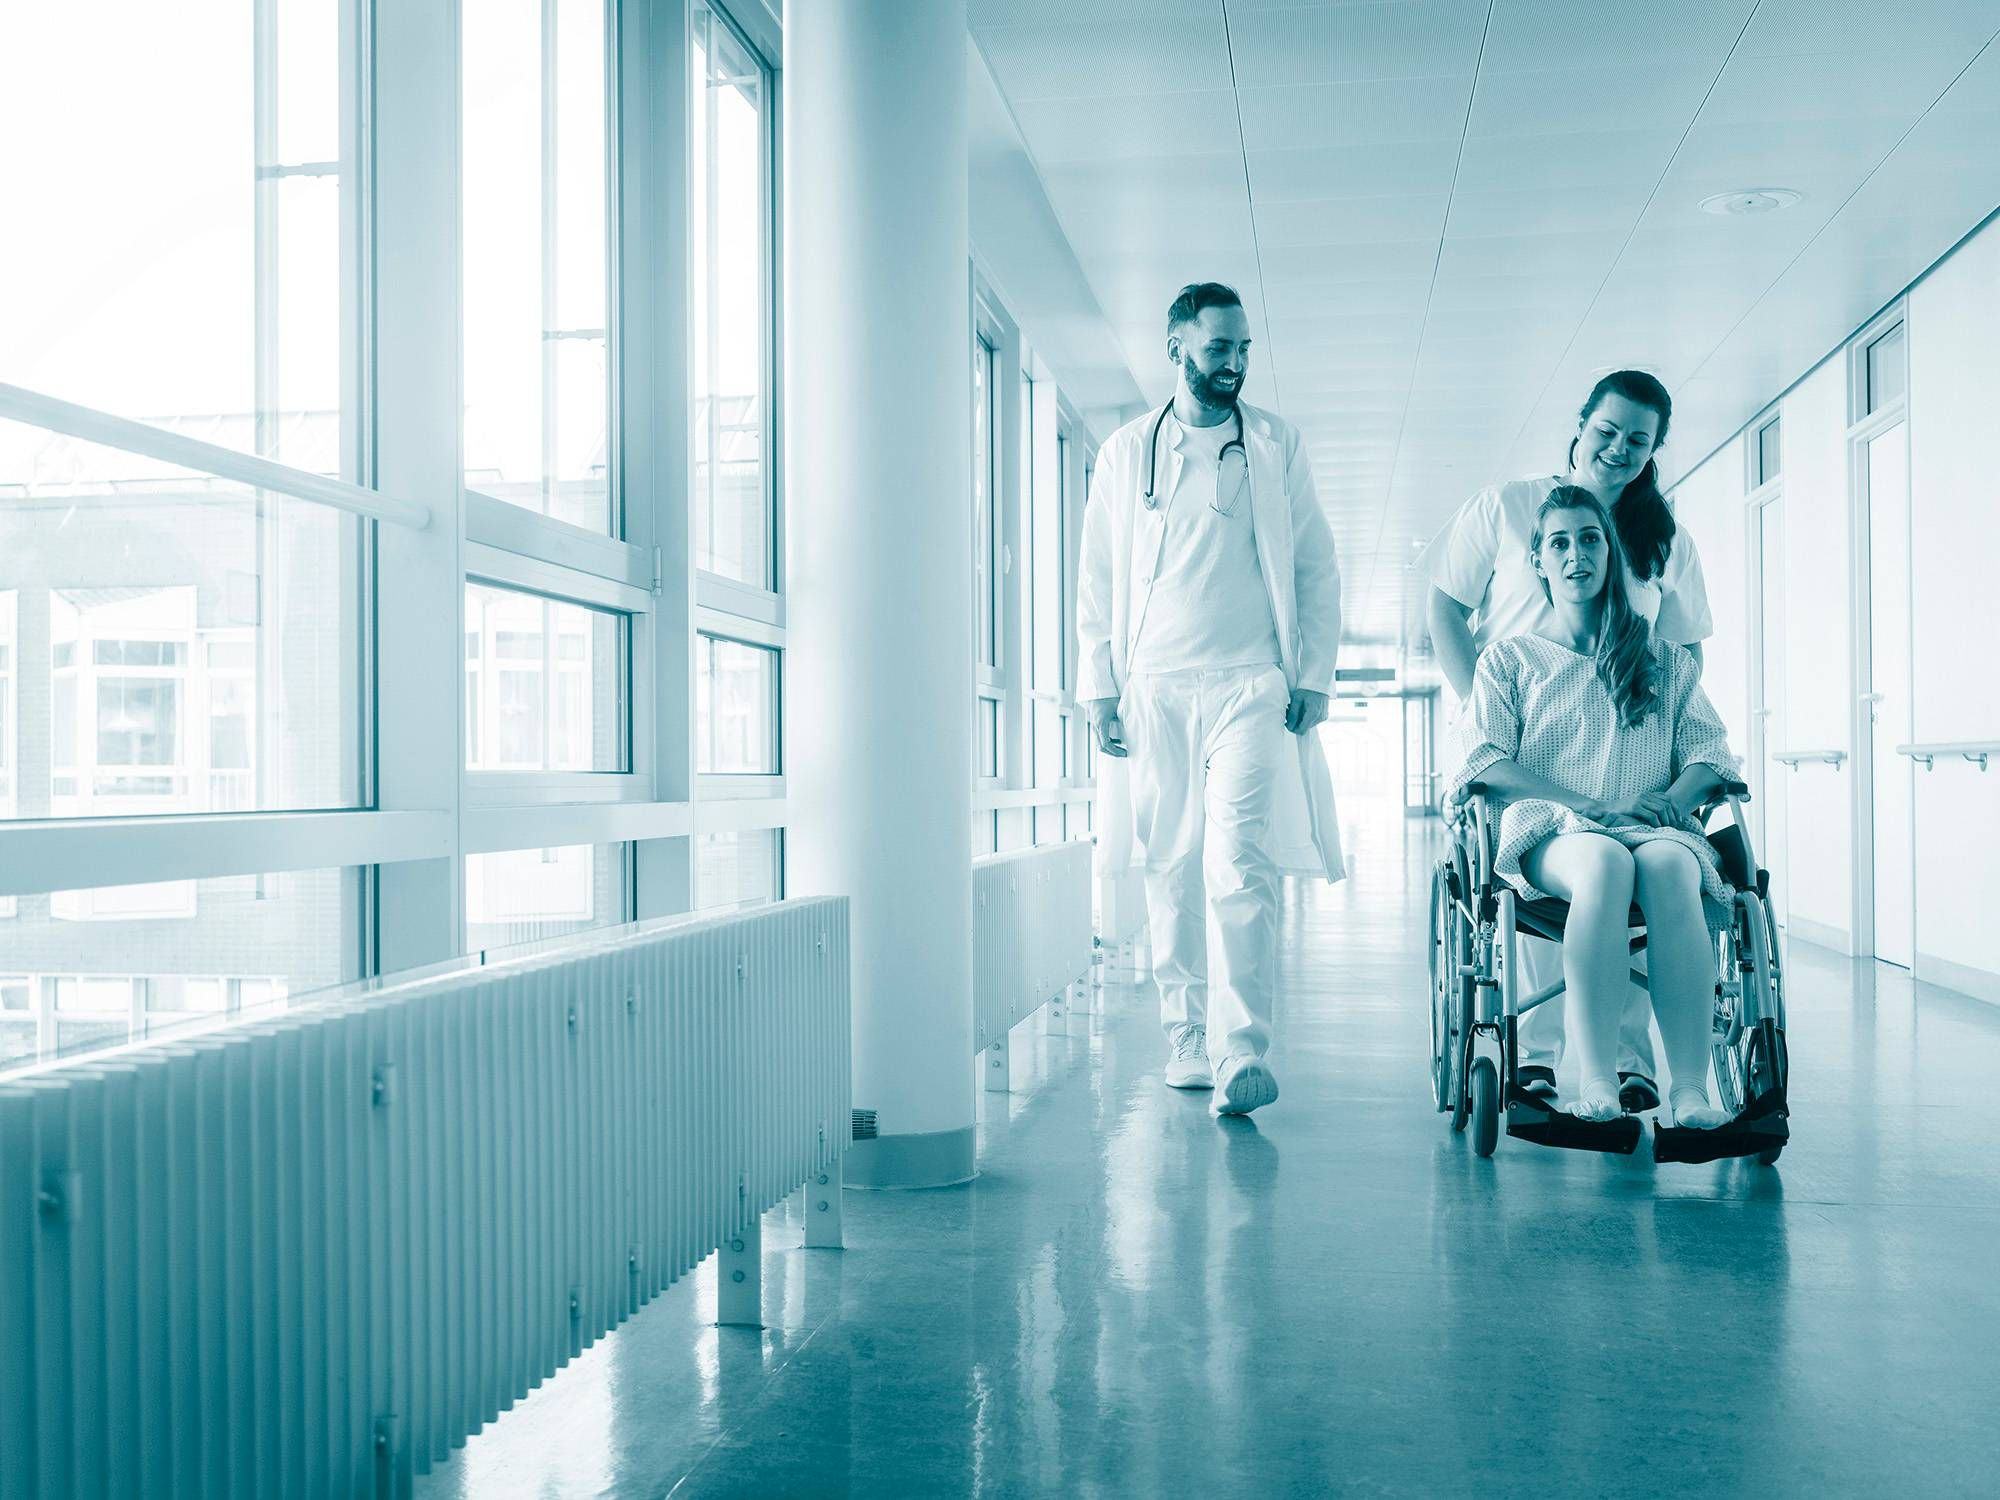 Medical staff caring for a patient in a wheelchair